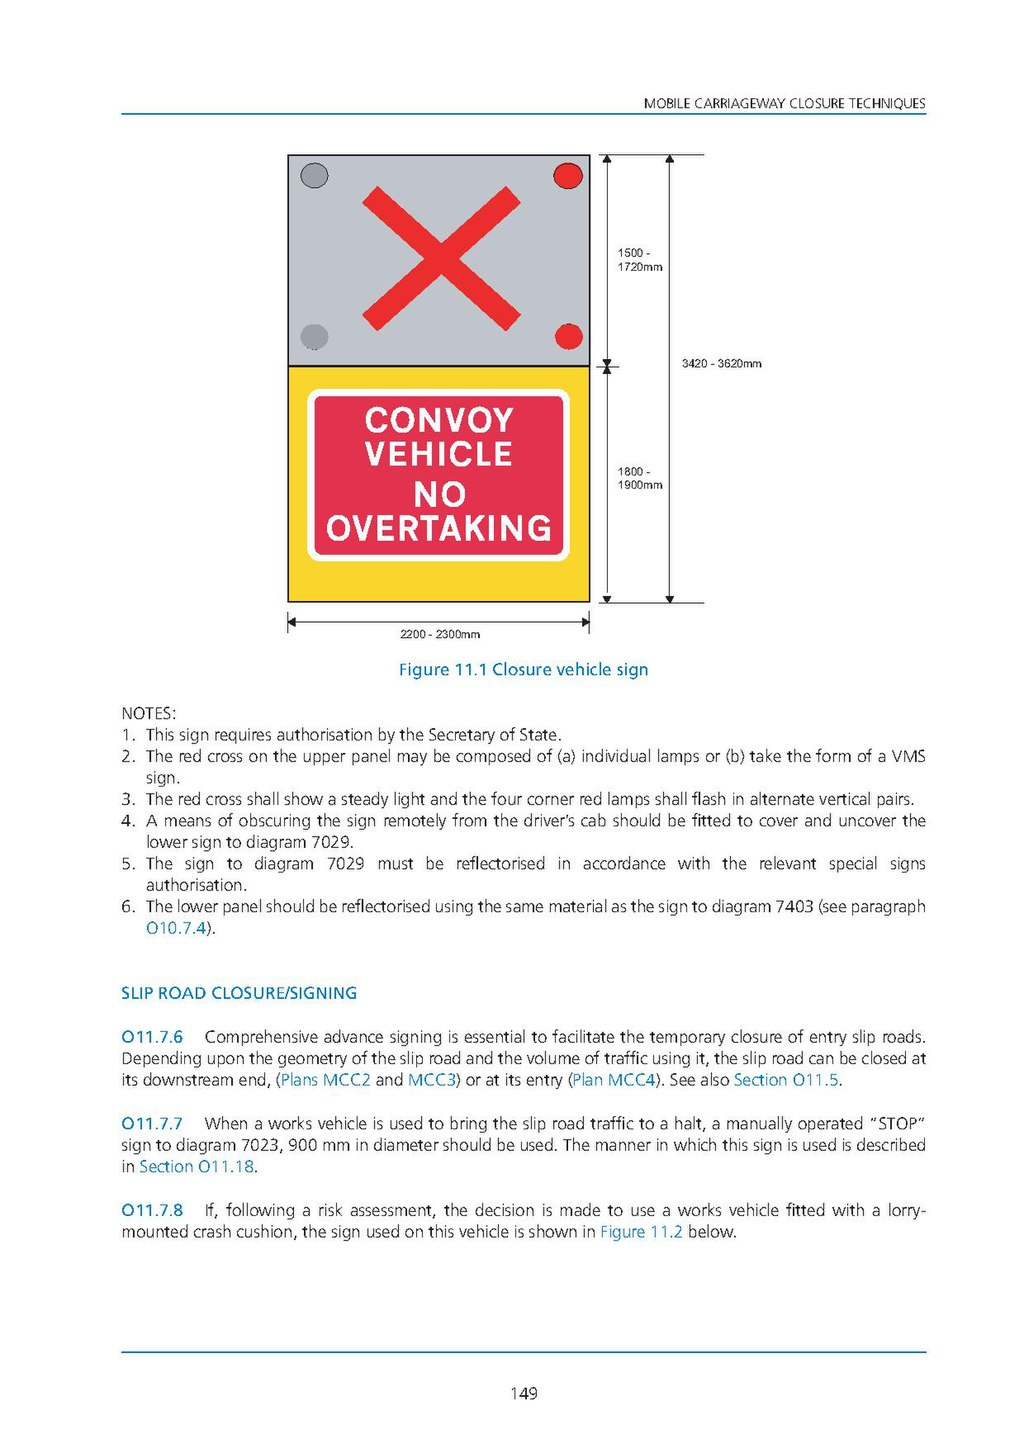 page uk traffic signs manual chapter 8 part 2 traffic safety rh en wikisource org Funny Person Holding Safety Manual Funny Person Holding Safety Manual